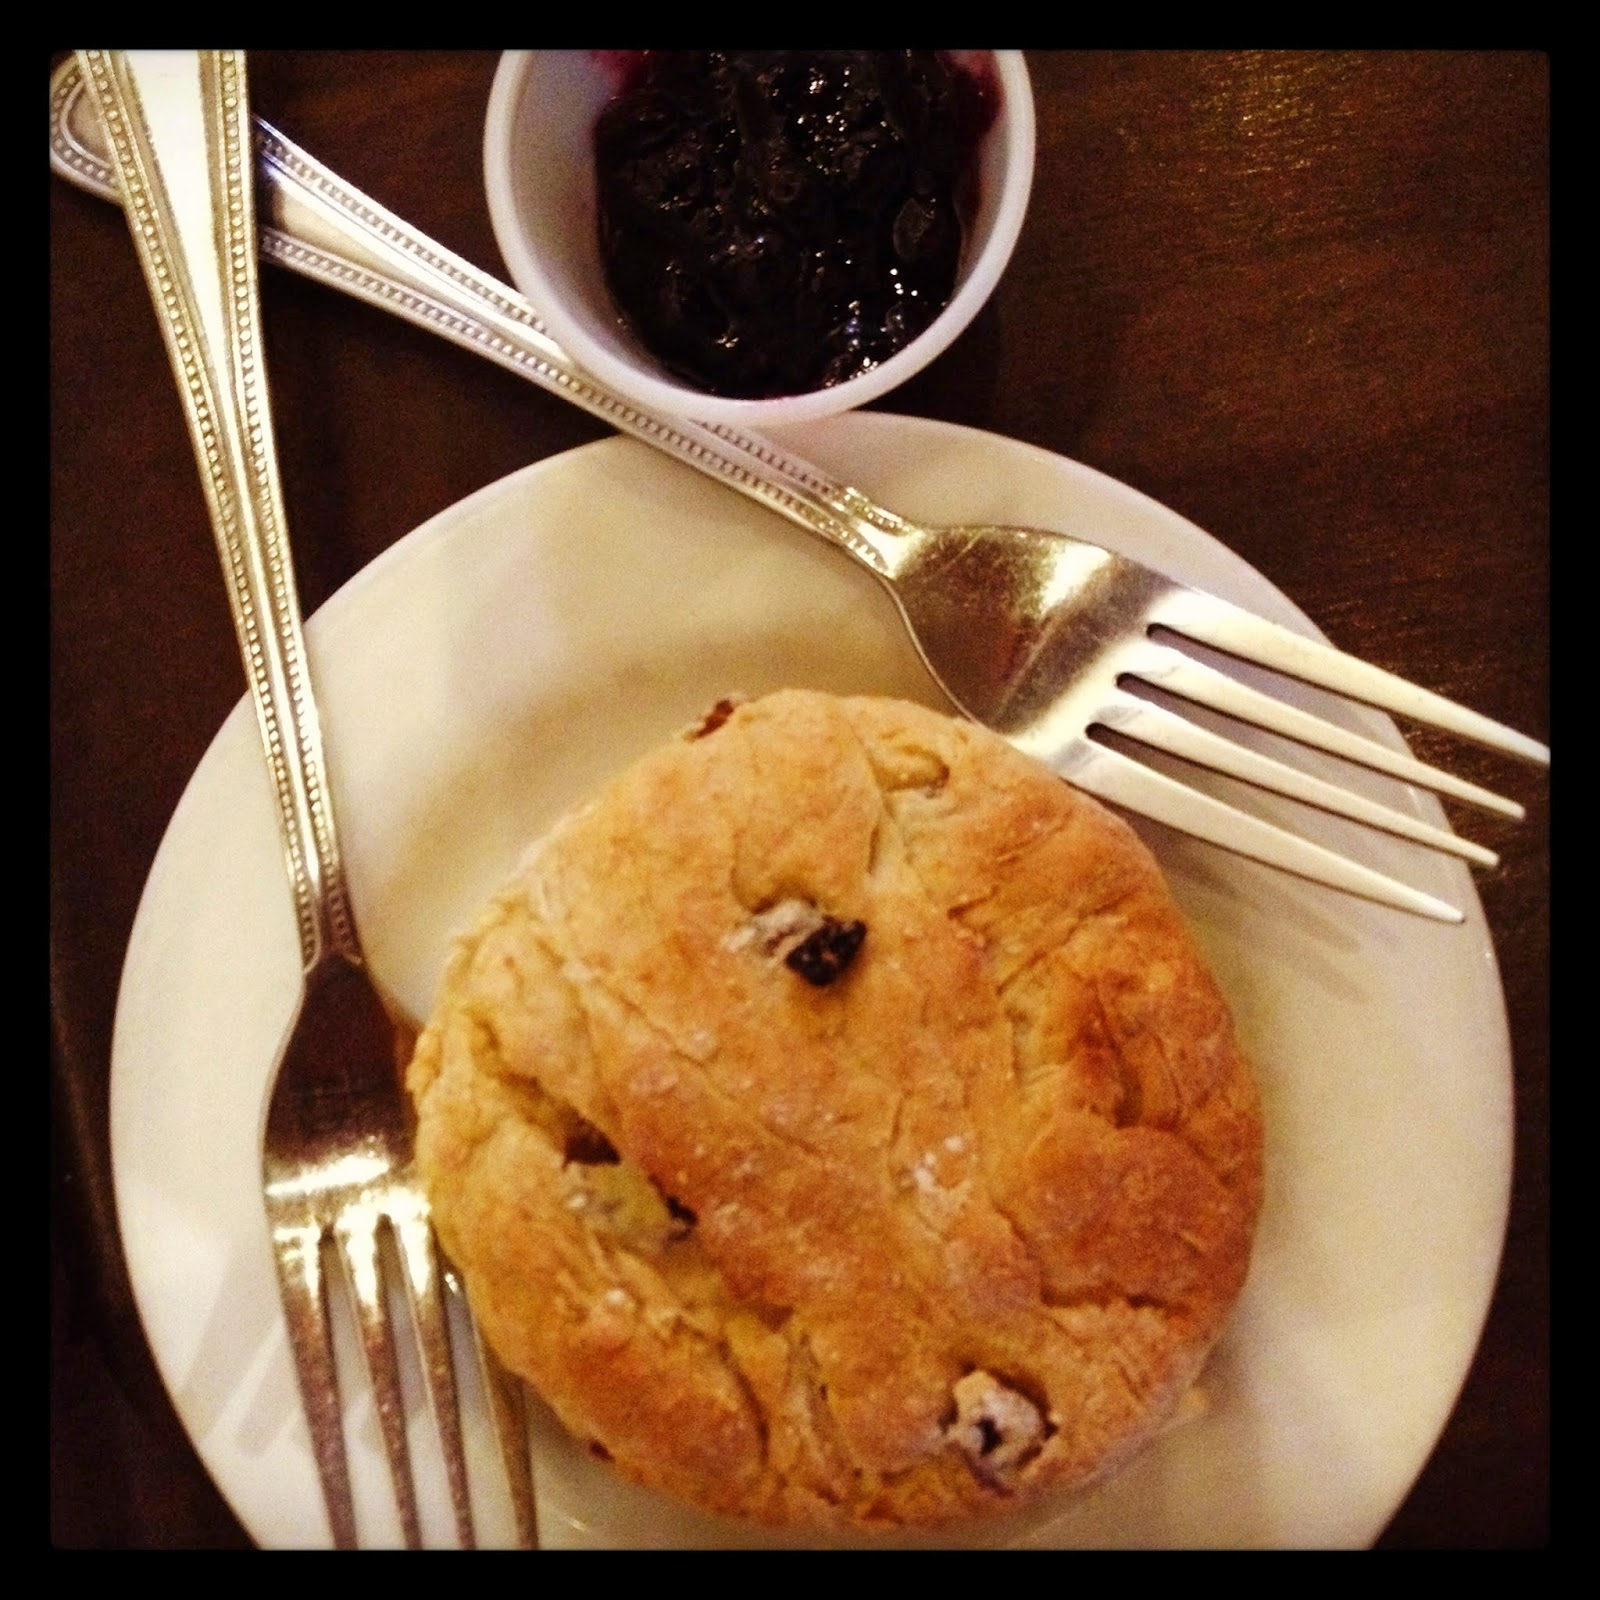 Vegetarian Vegan Scone and Jam Cornucopia Dublin, Ireland